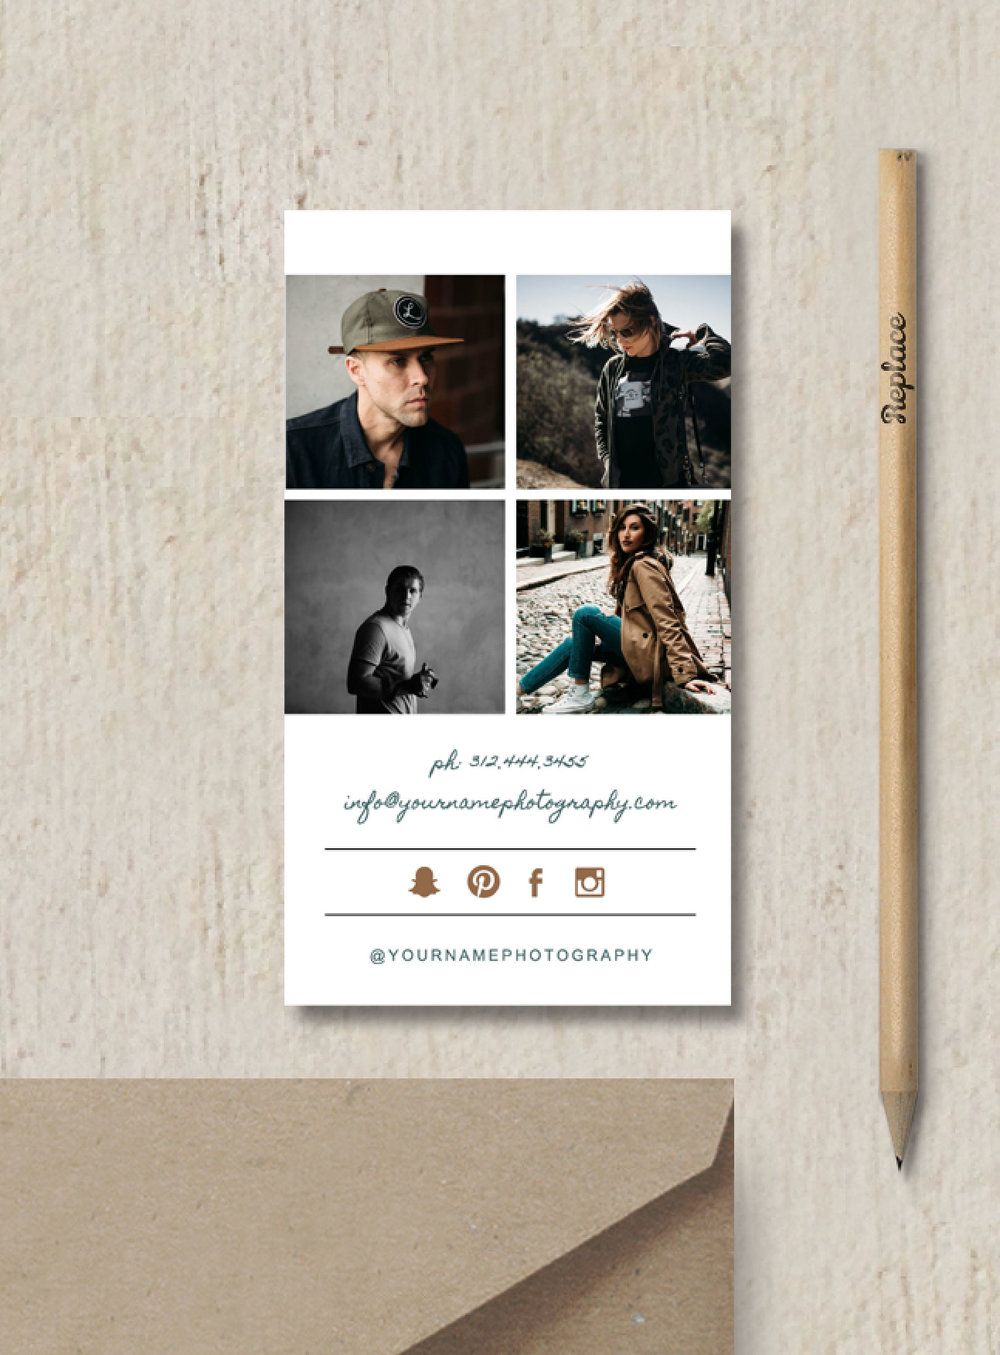 Photography Business Card Template Elm Photography Business Cards Template Photography Business Cards Photographer Business Cards